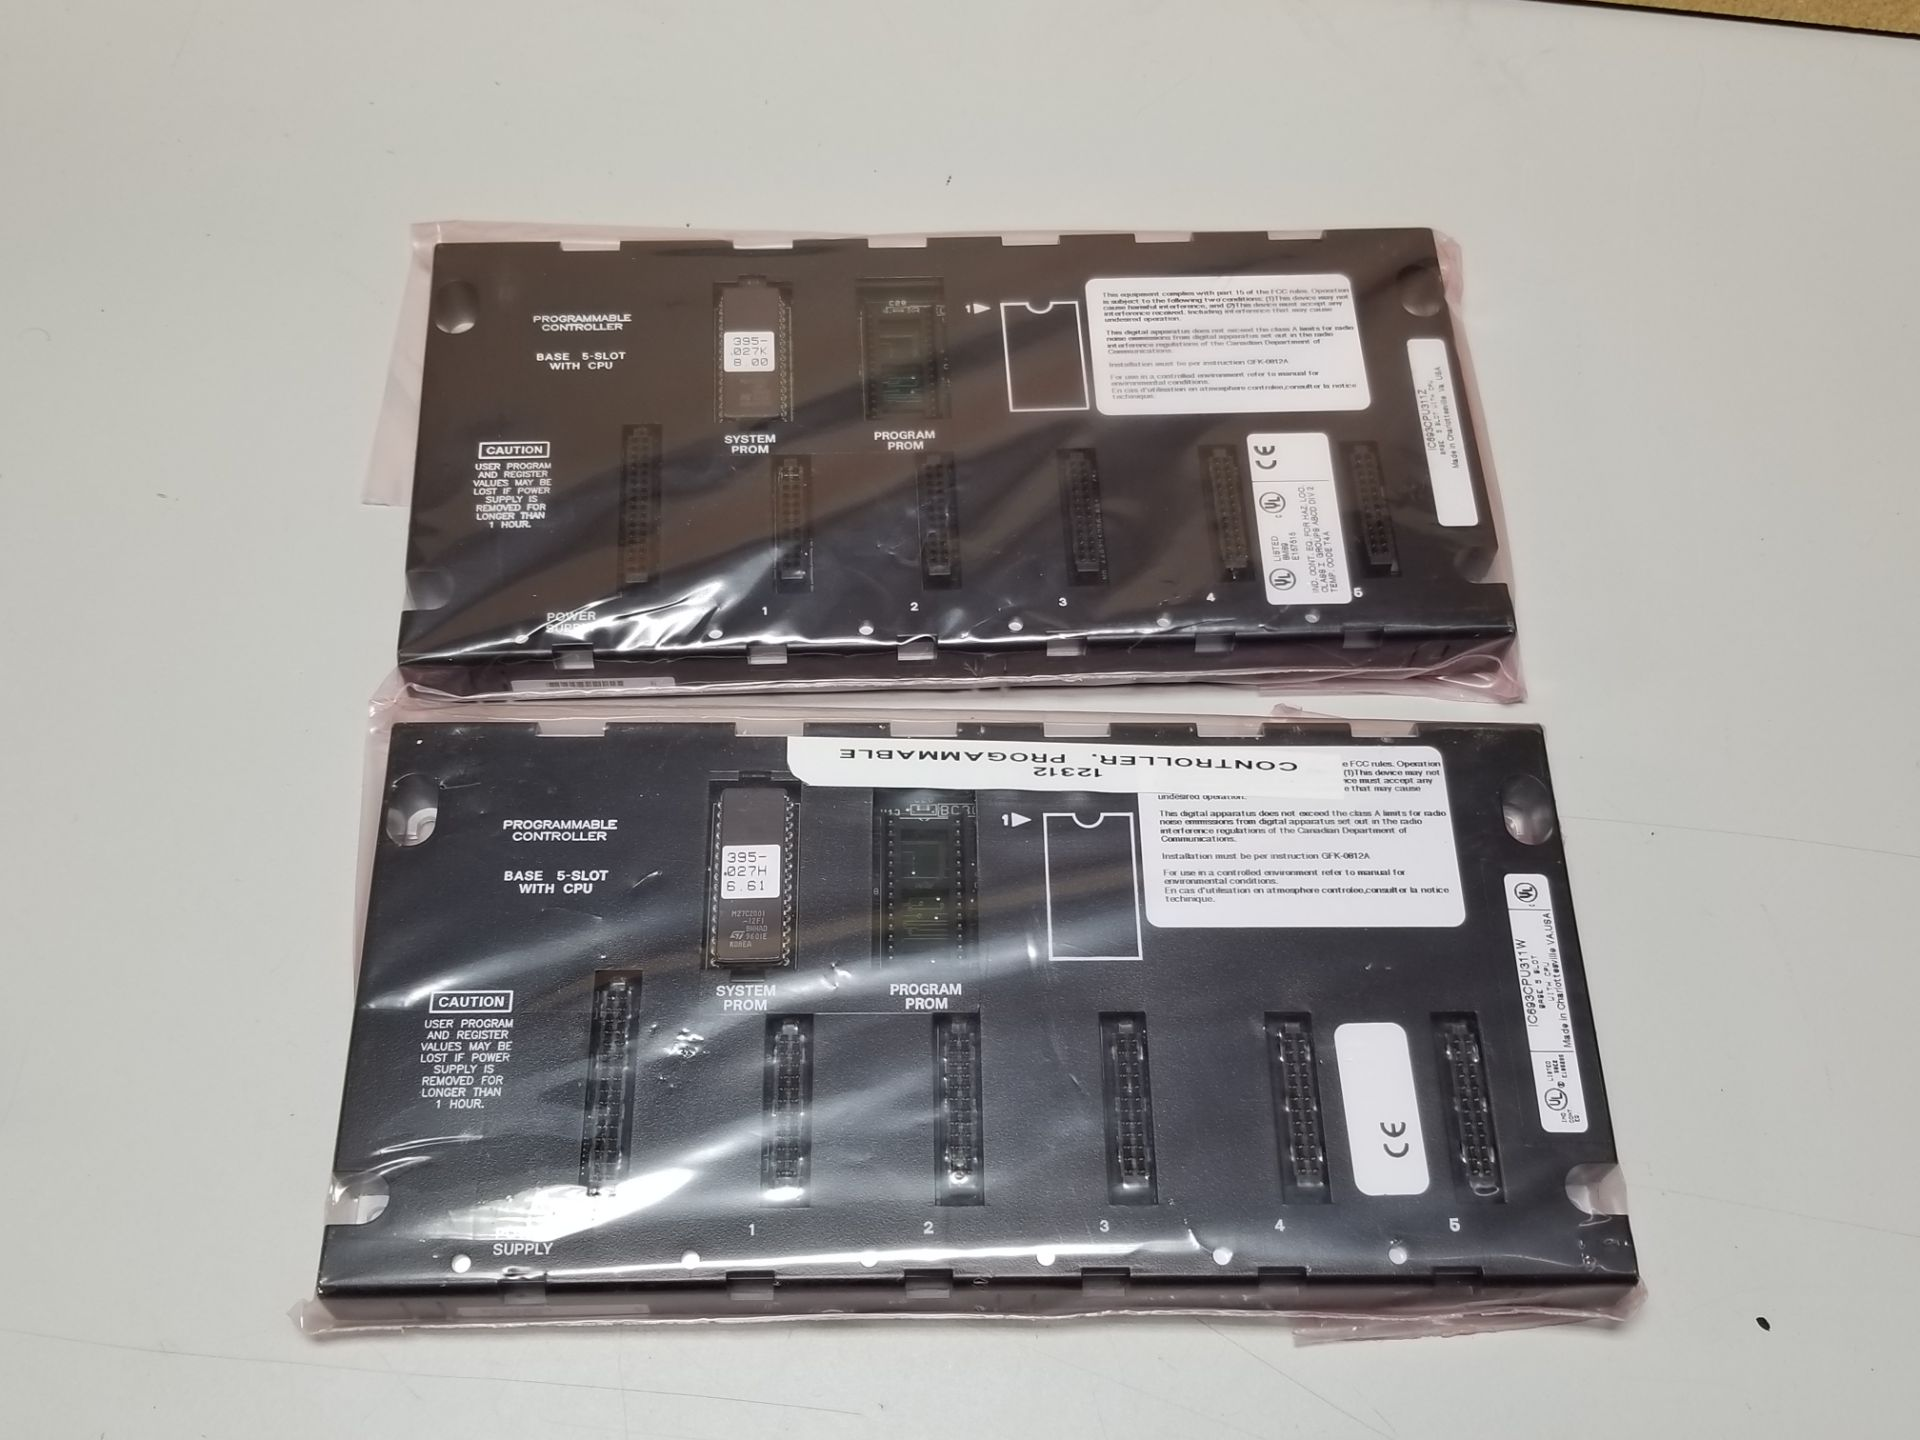 Lot 52 - LOT OF UNUSED GE FANUC PLC CHASSIS RACKS WITH CPU'S